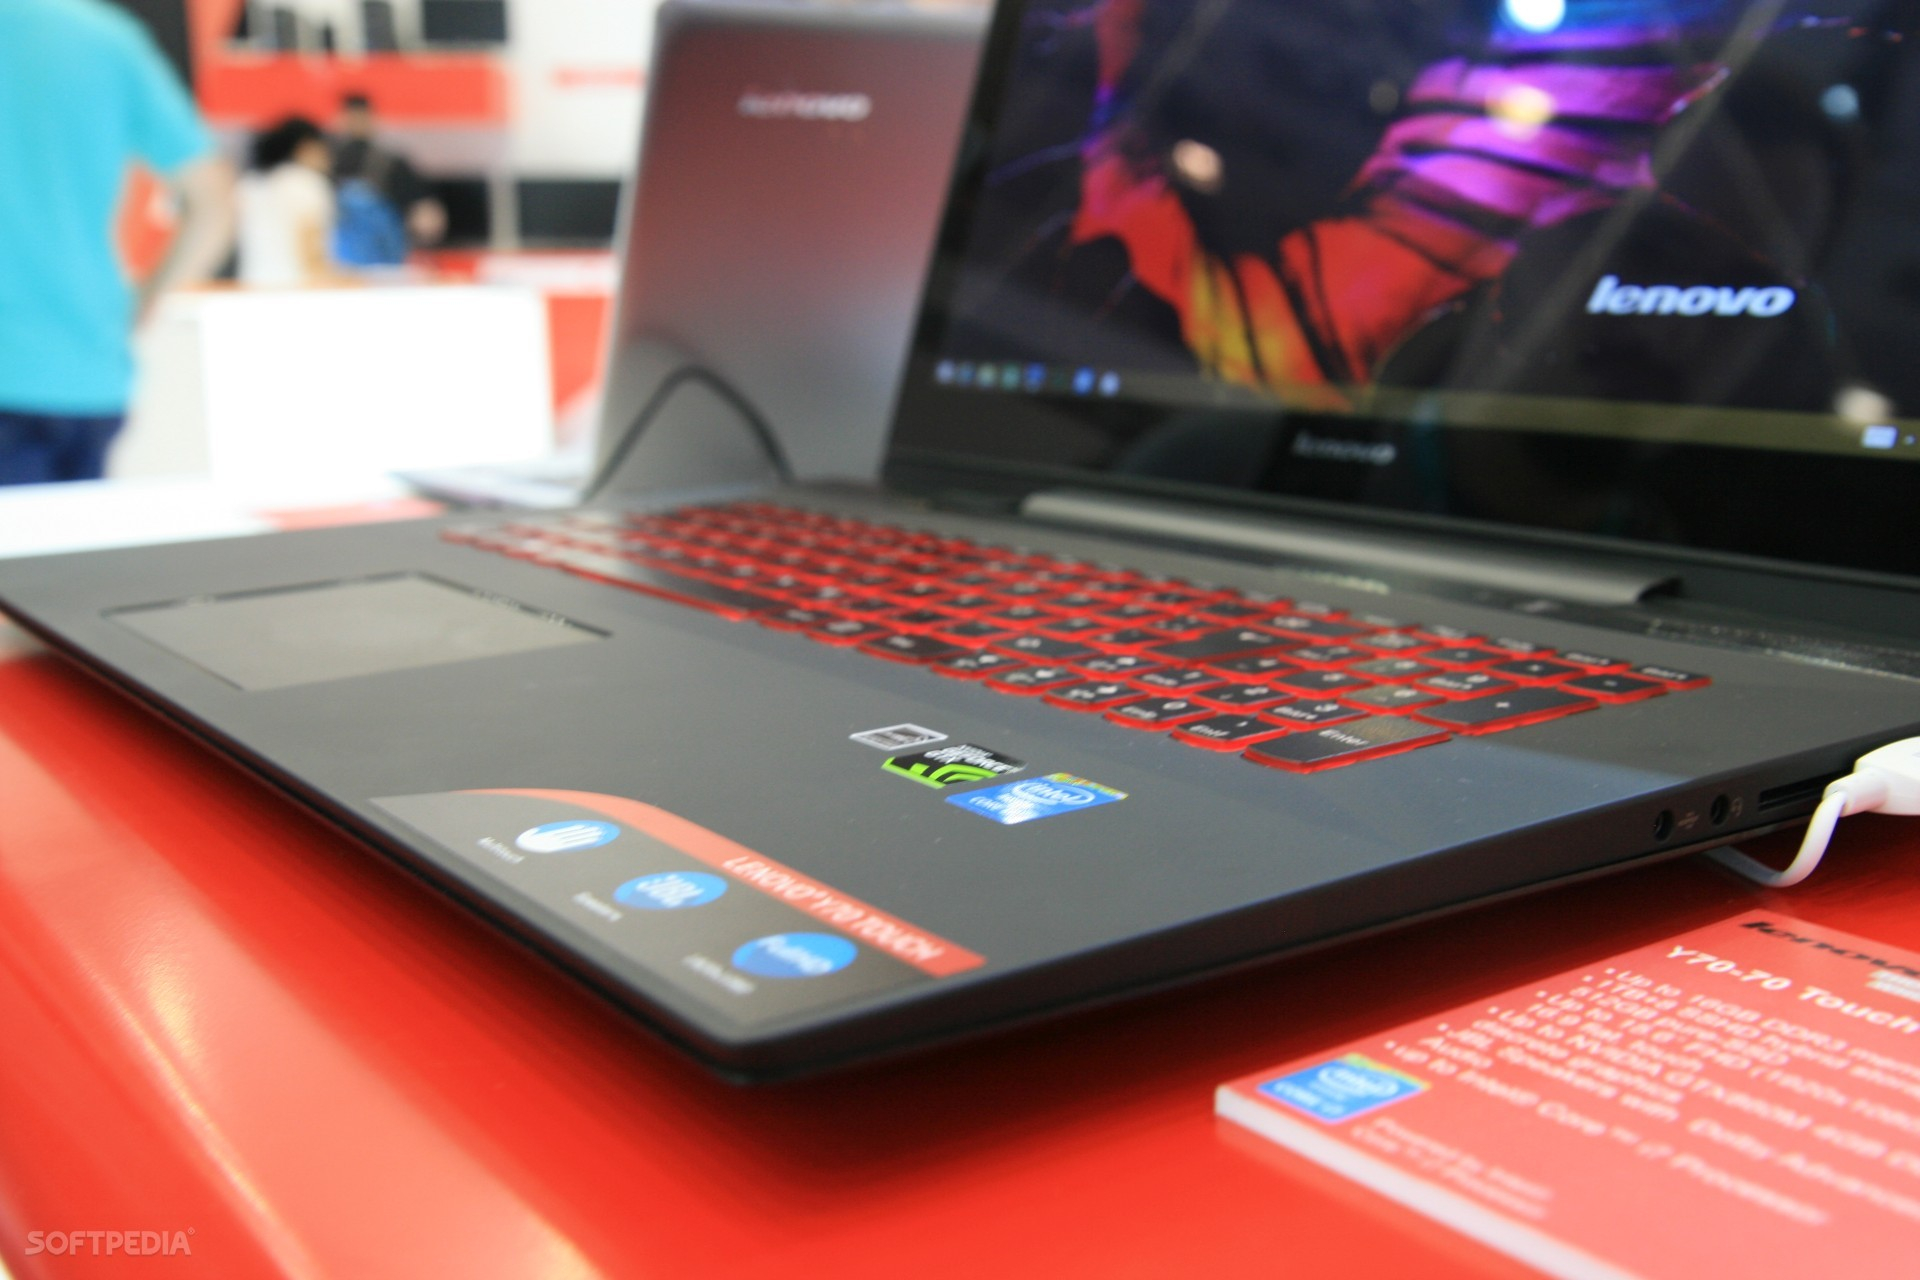 Hands-On  Lenovo IdeaPad Y70 Gaming Laptop with Touch Screen ee32f28766